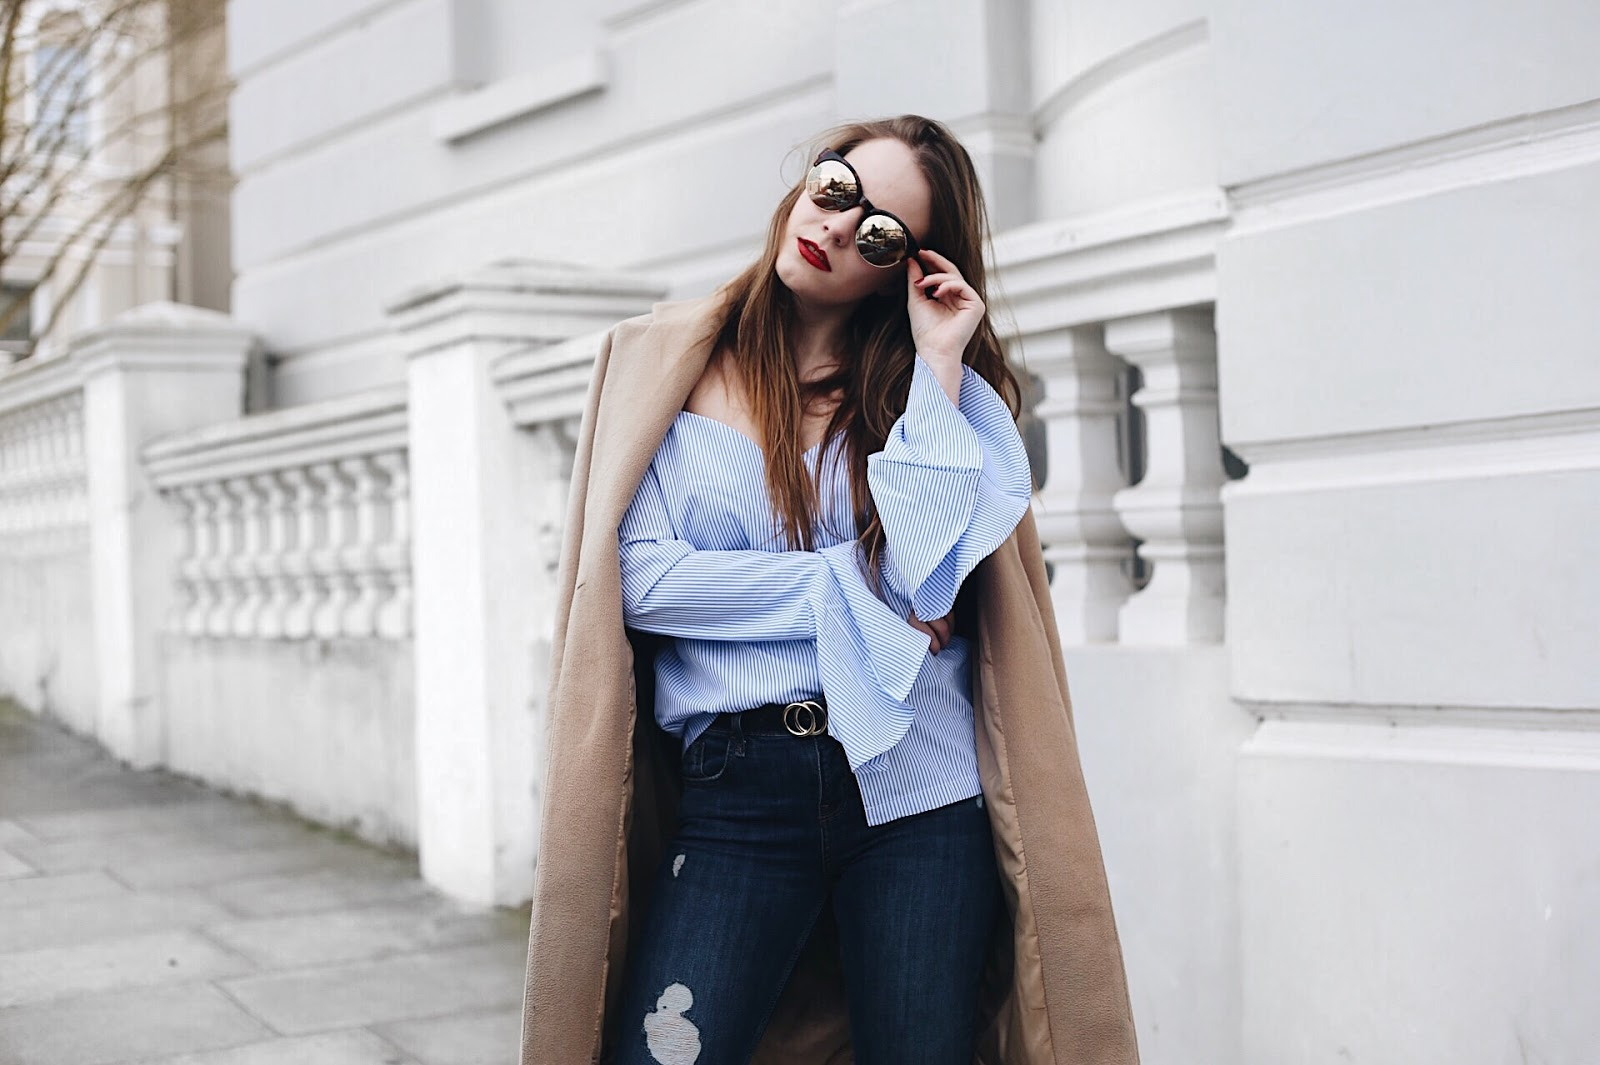 love/hate relationship, love/hate relationship instagram, instagram, instagram changes, love & hate, aquazzura heels, aquazzura, boohoo, zara bag, boohoo outfit, boohoo coat, boohoo blouse, river island jeans, london blogger, london style blogger, nottinghill